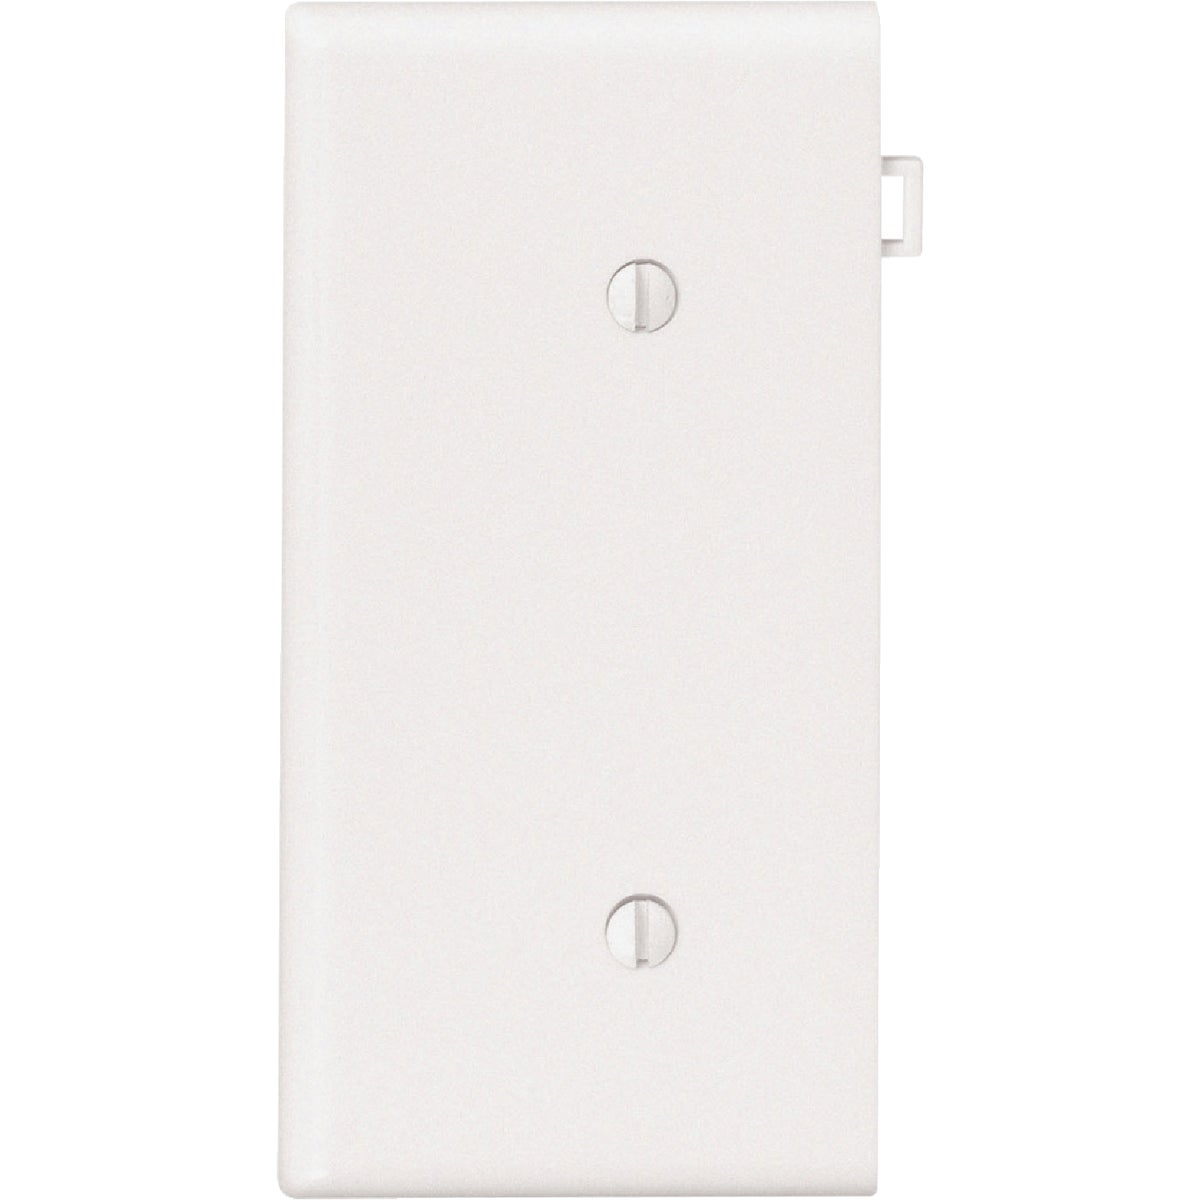 WHT BLANK END PLATE - 006-PSE14W by Leviton Mfg Co